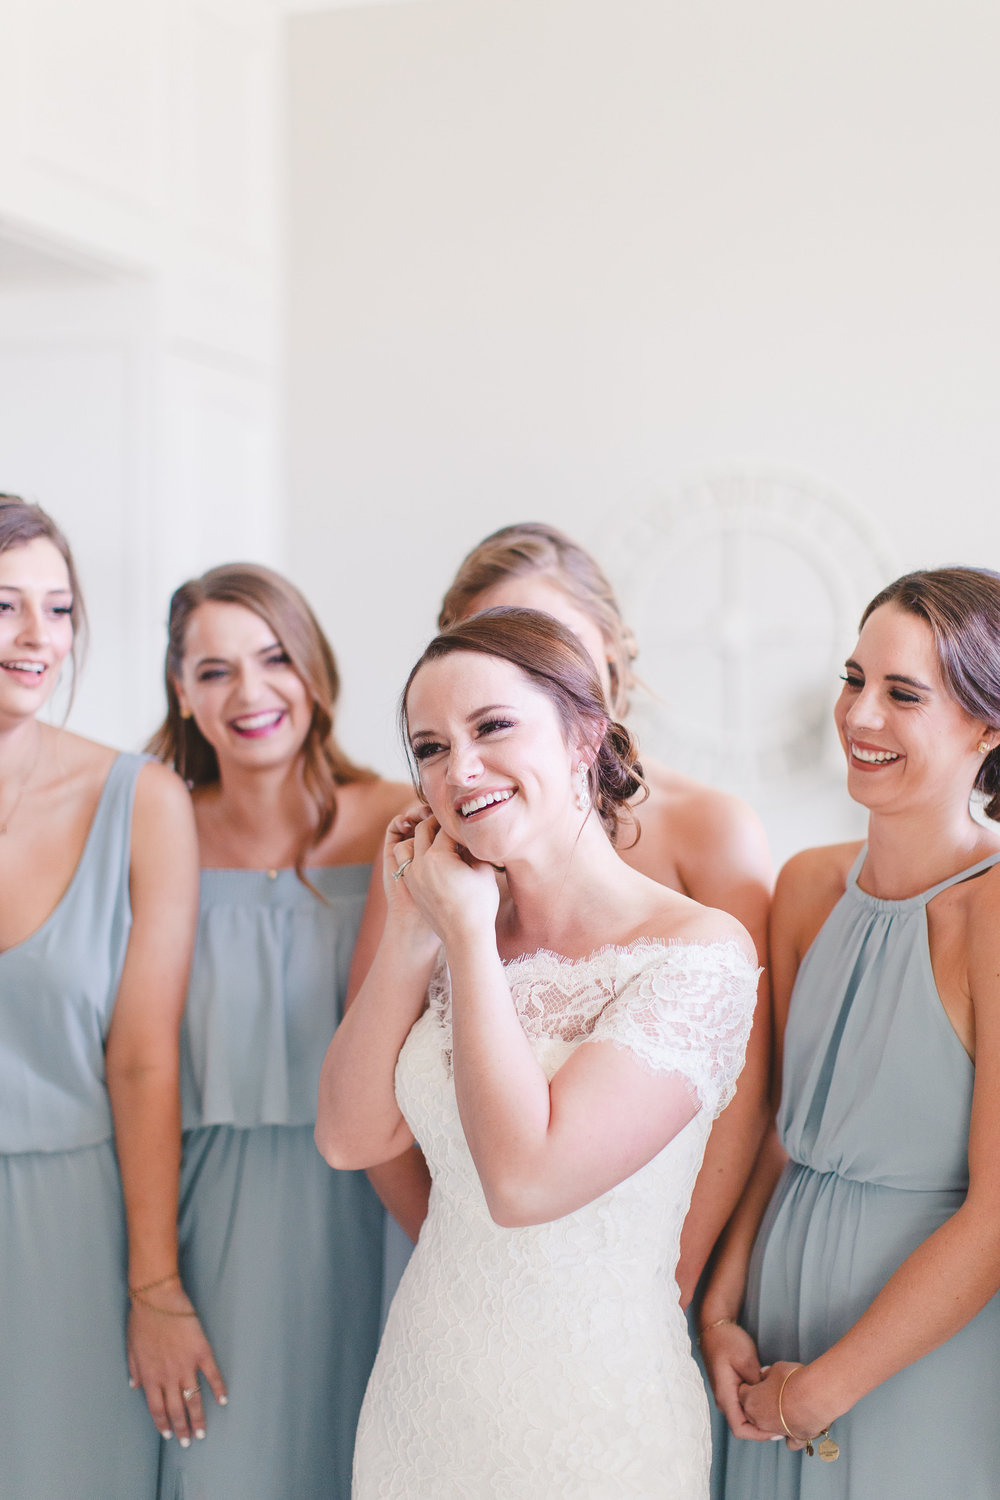 Dusty Blue Bridesmaids Dresses | Rose Gold and Dusty Blue Winter Wedding in Dallas, TX